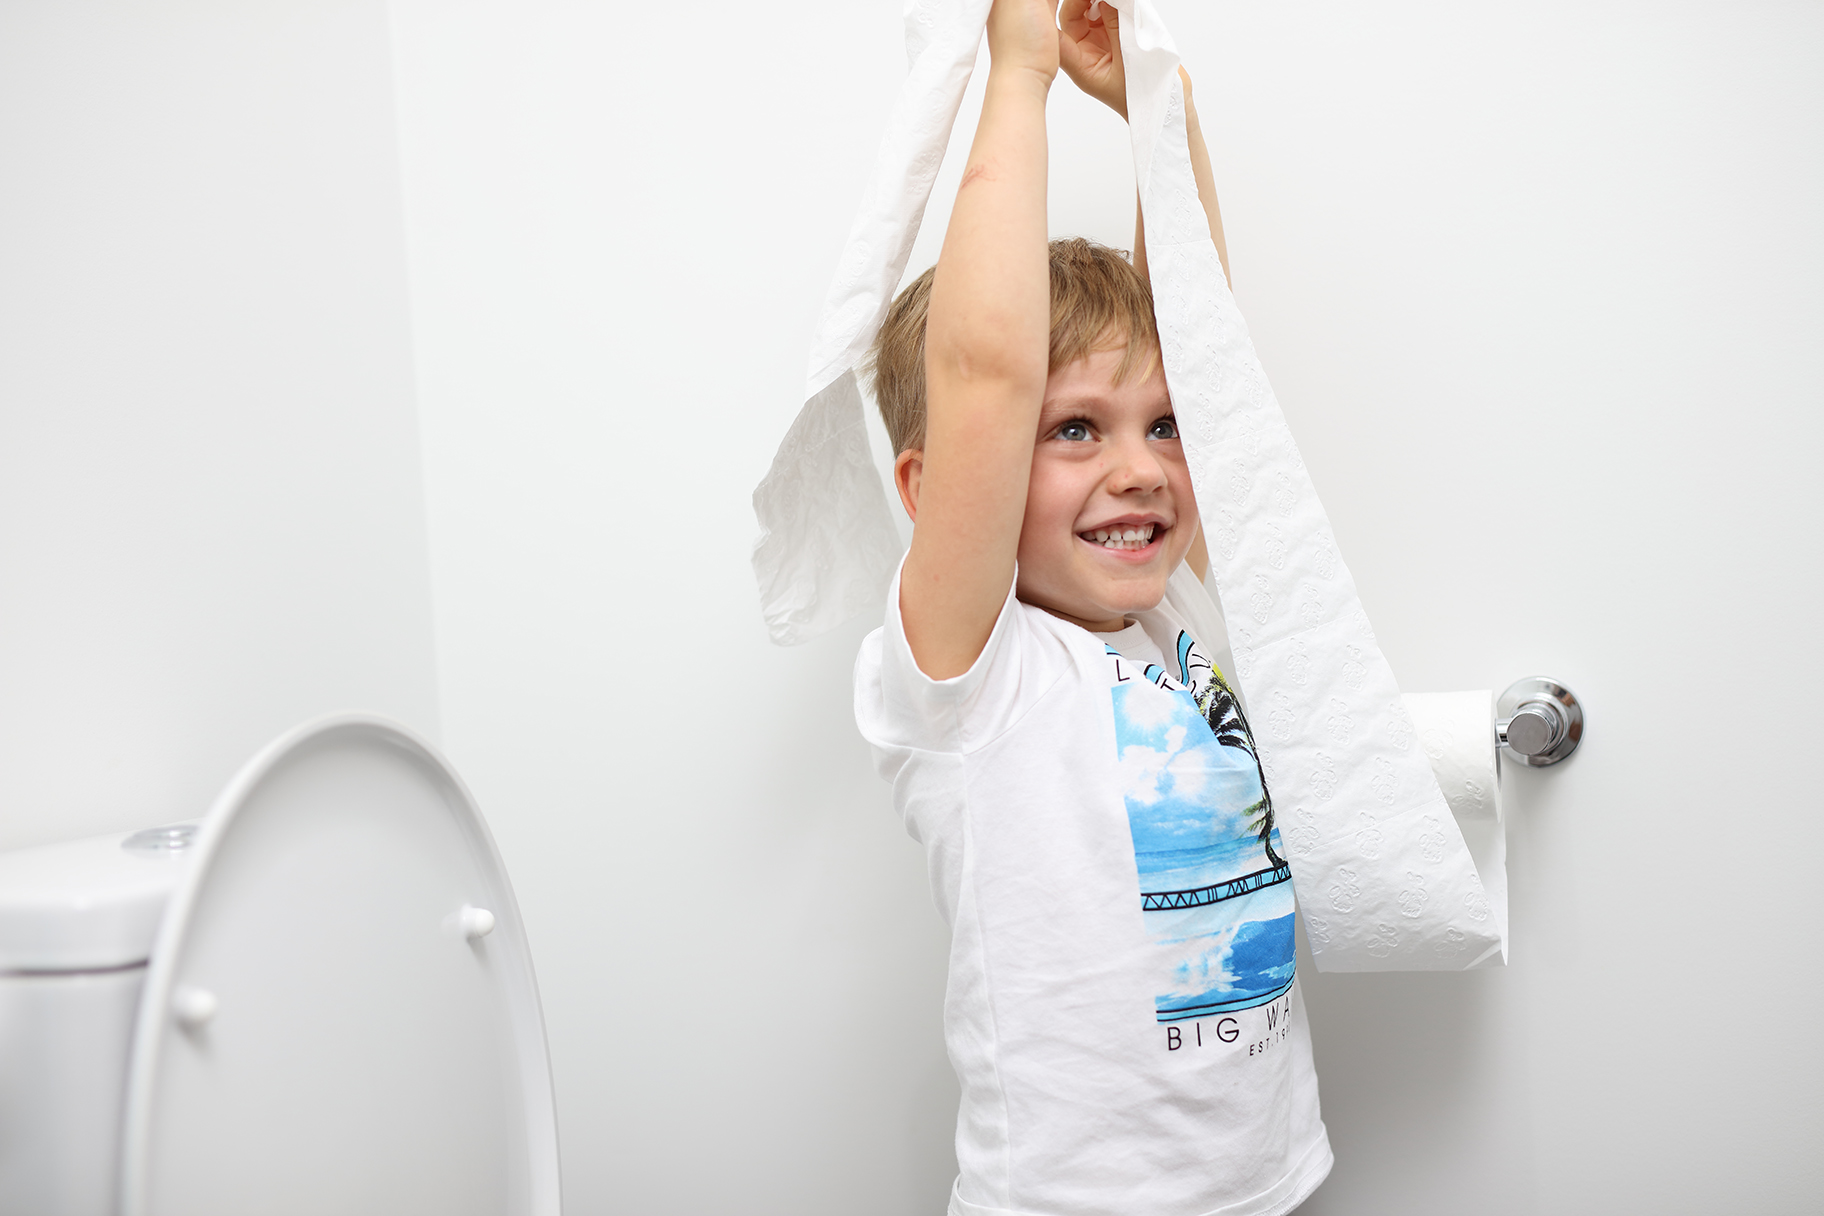 Young boy playing with toilet paper in bathroom of residential house